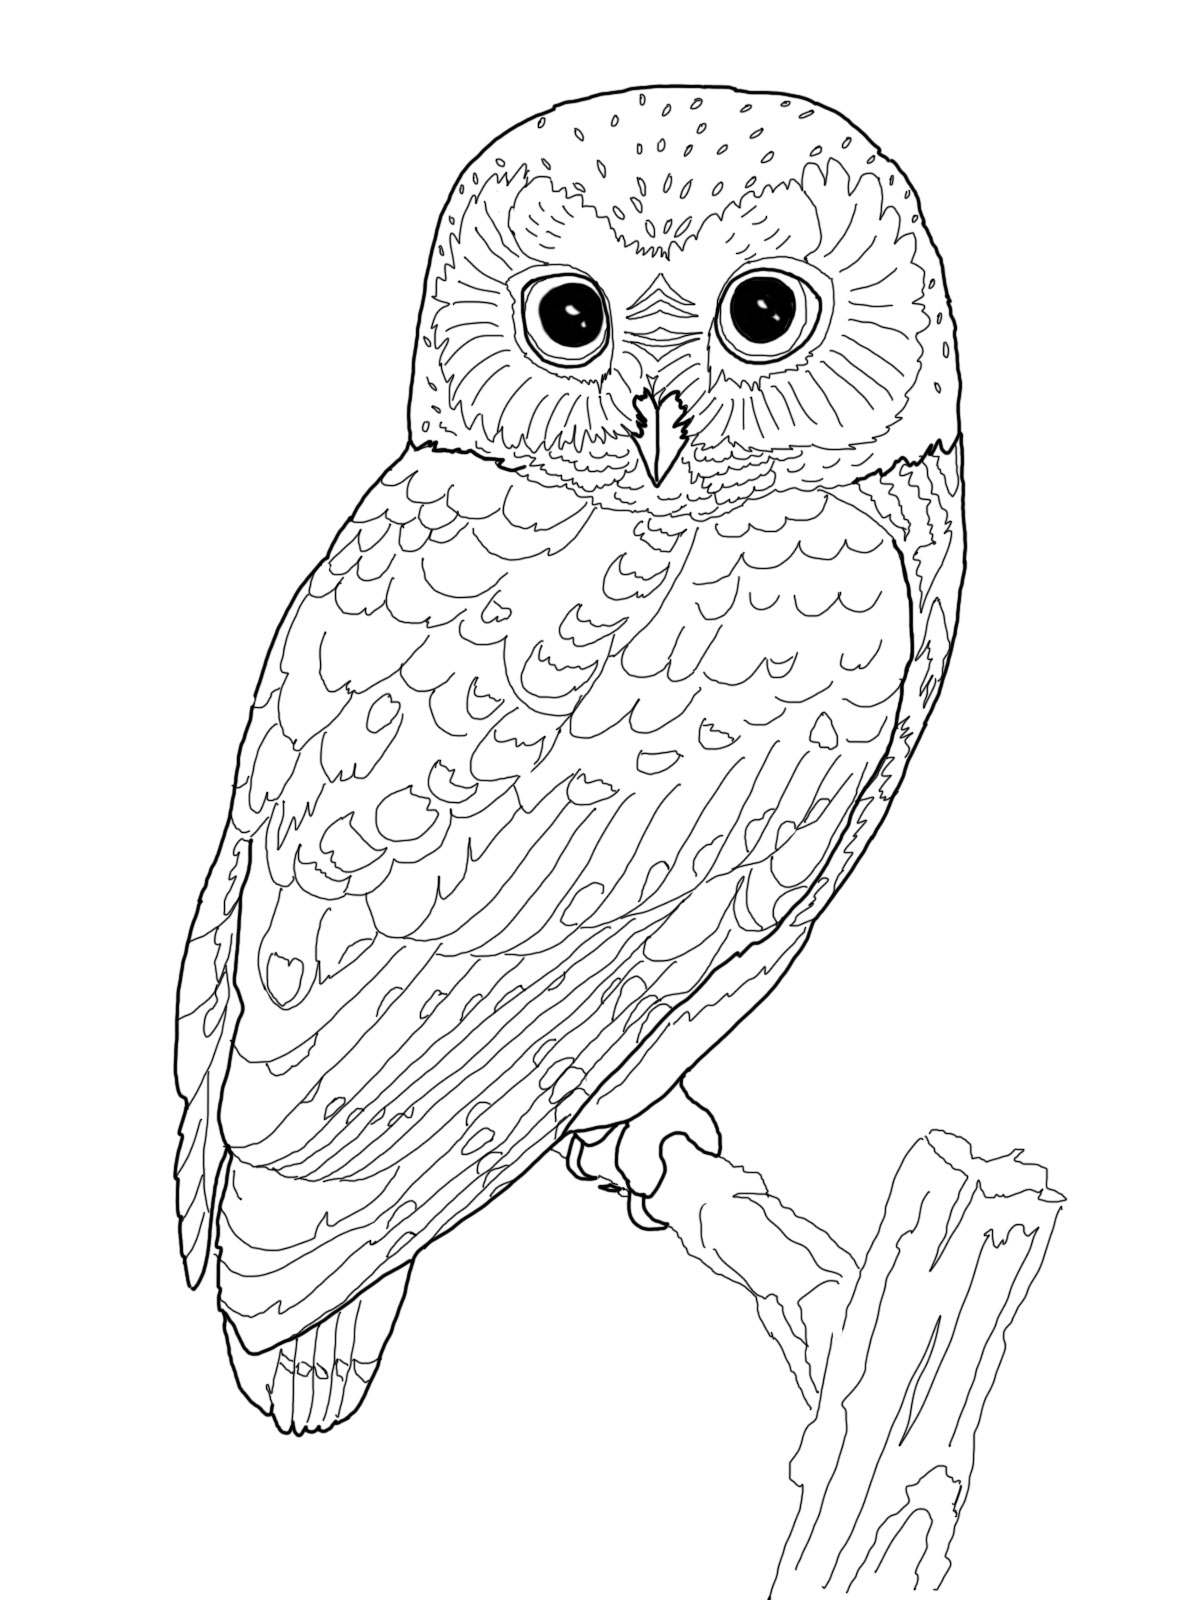 coloring pages of barn owls - photo#24